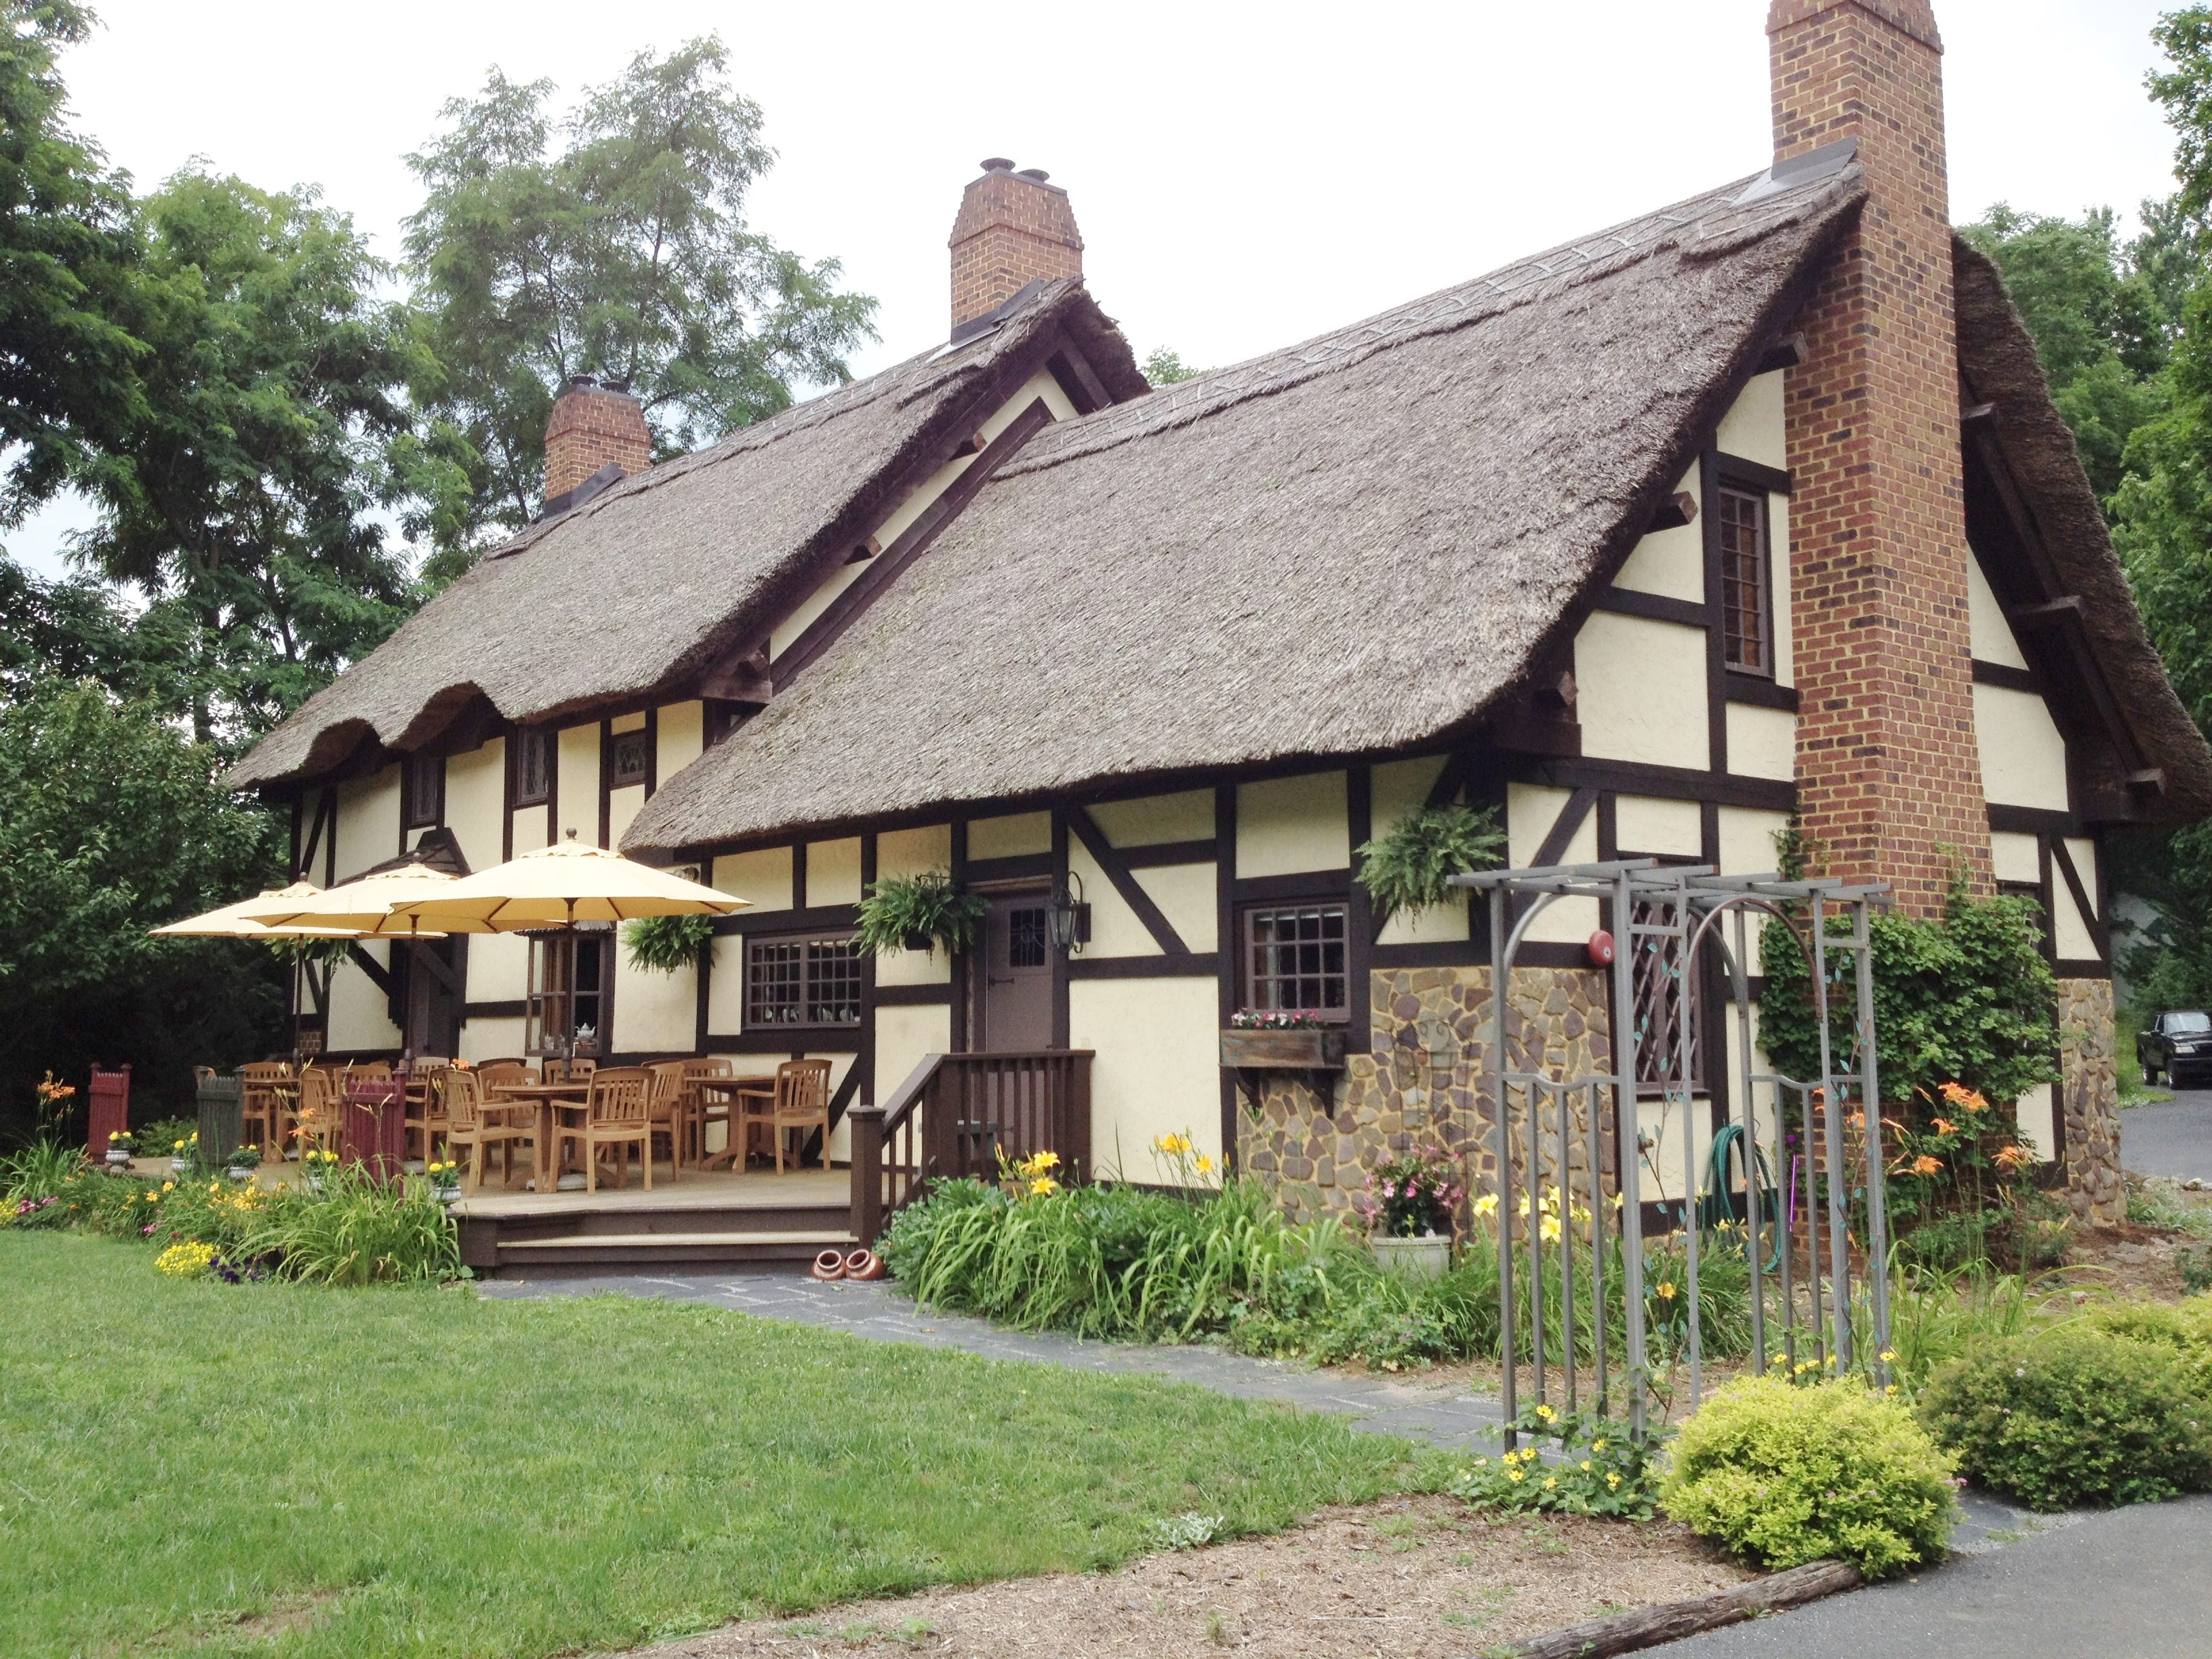 The Anne Hathaway Cottage on West Beverley Street in Staunton is up for sale. It is ideal for a residential home or a bed and breakfast. Most recently, it had been used as an English tea room.